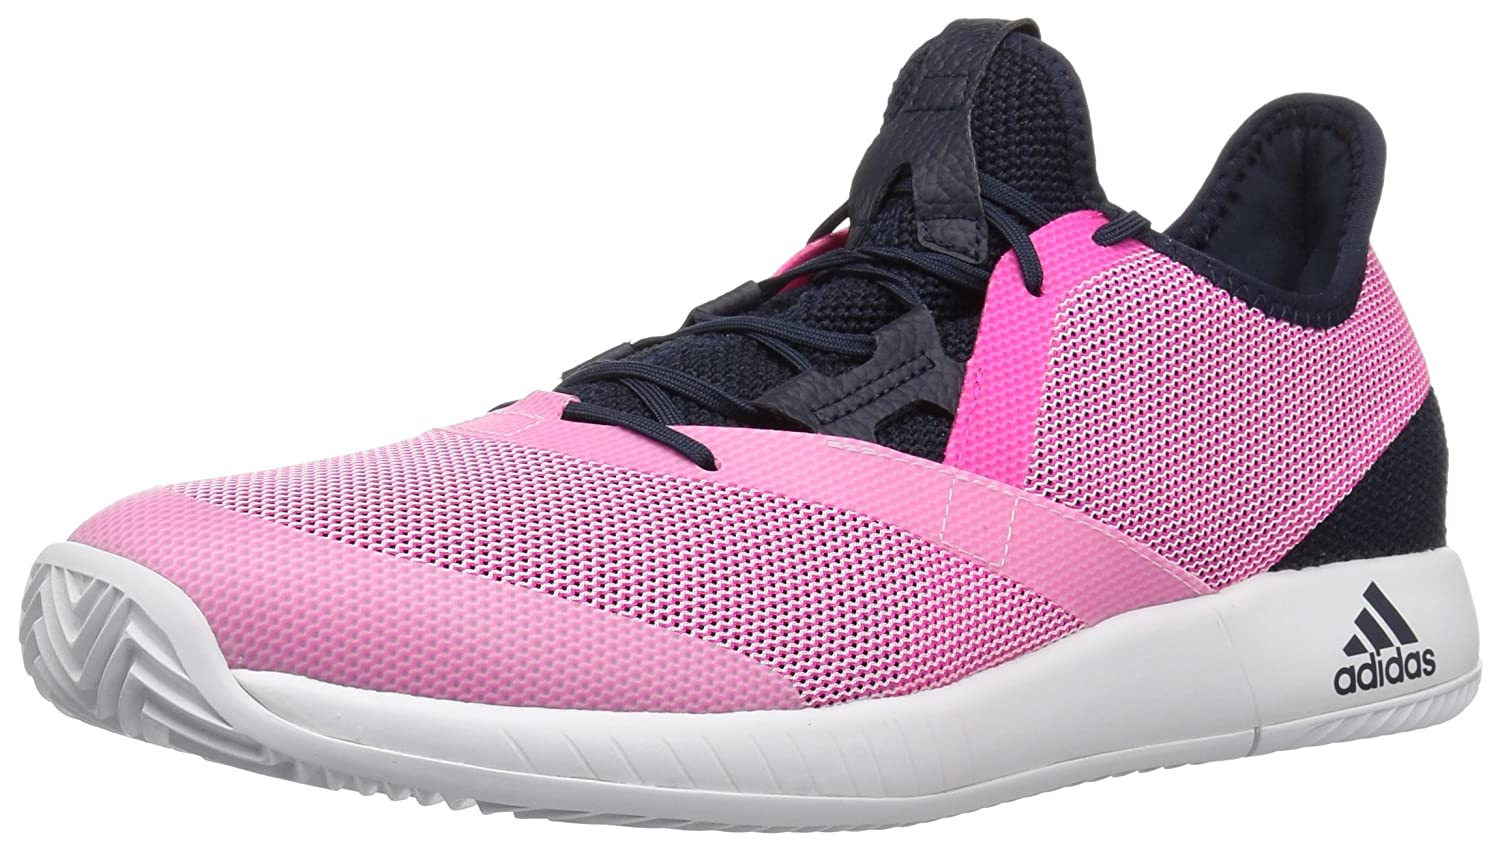 buy popular 67cf1 5ed25 Amazon.com  adidas Originals Womens Adizero Defiant Bounce Tennis Shoes   Shoes